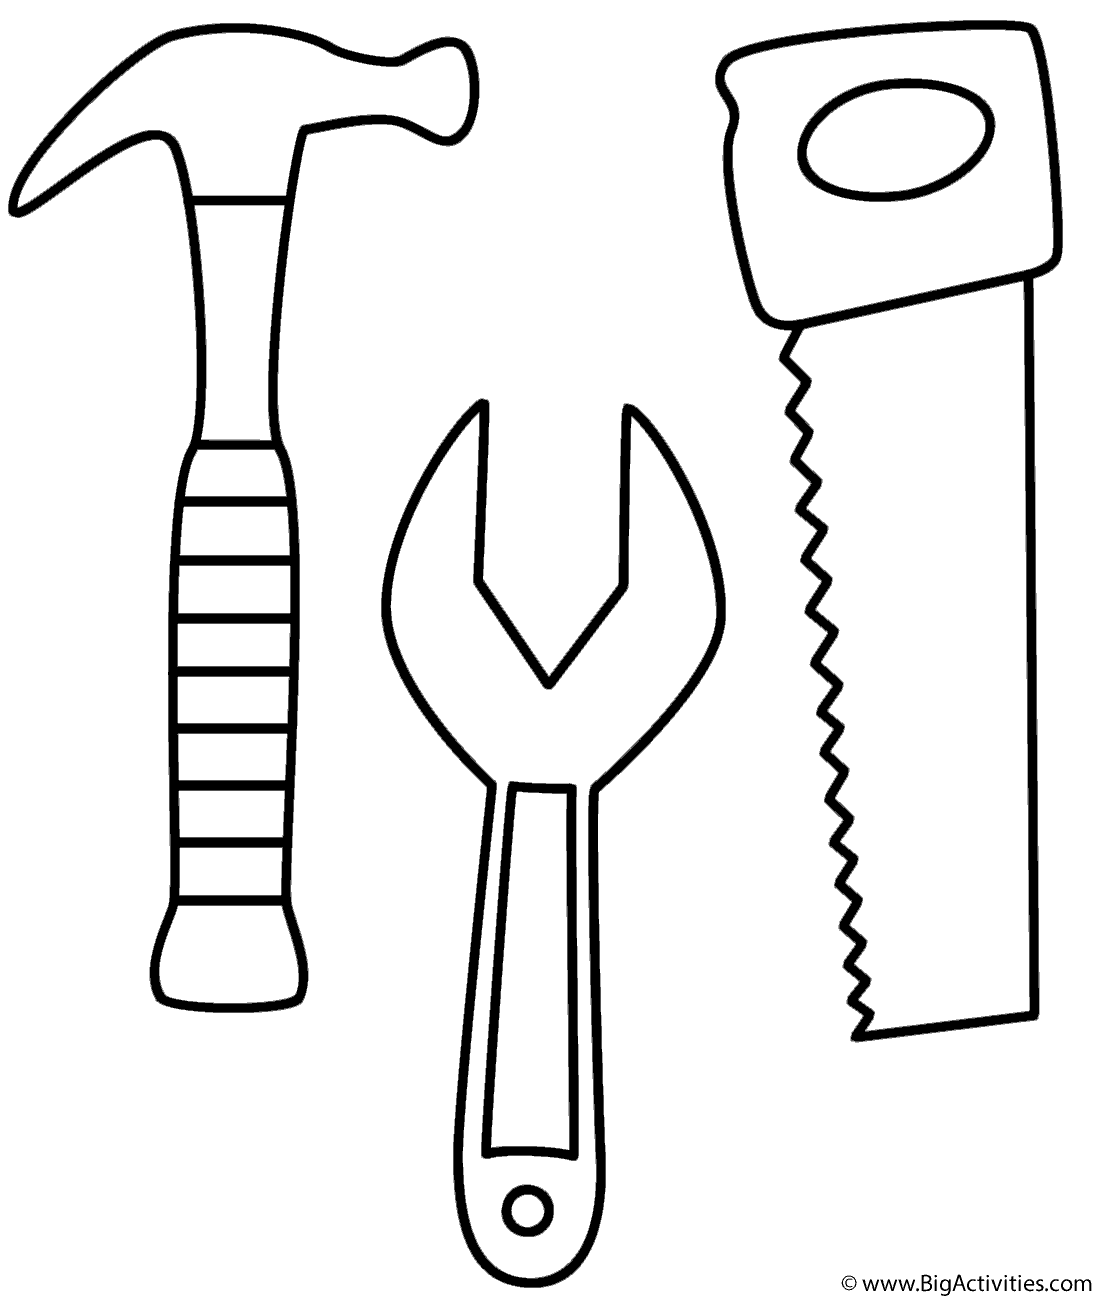 tools coloring pages Hammer, Saw and Wrench   Coloring Page (Tools) tools coloring pages